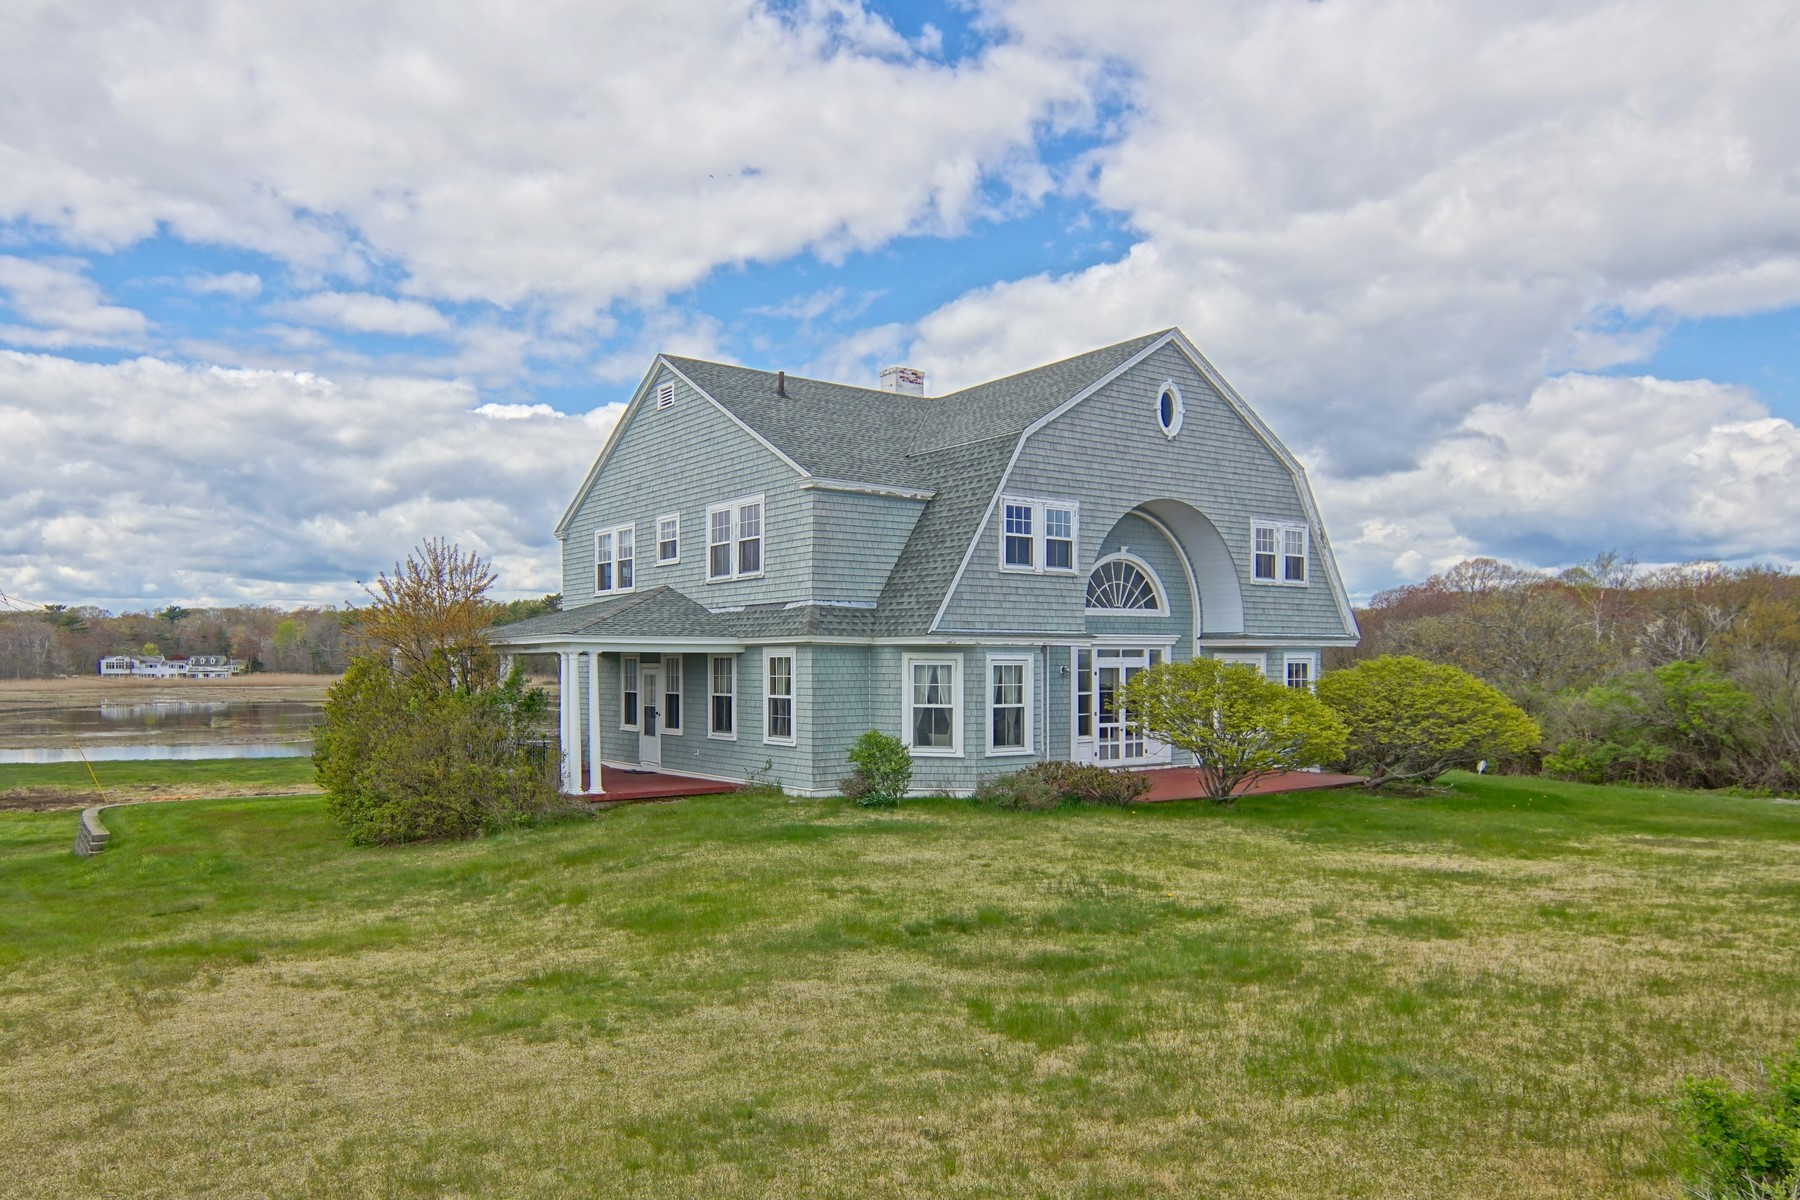 Single Family Home for Sale at Iconic North Hampton Shore 90 Ocean Blv North Hampton, New Hampshire 03862 United States